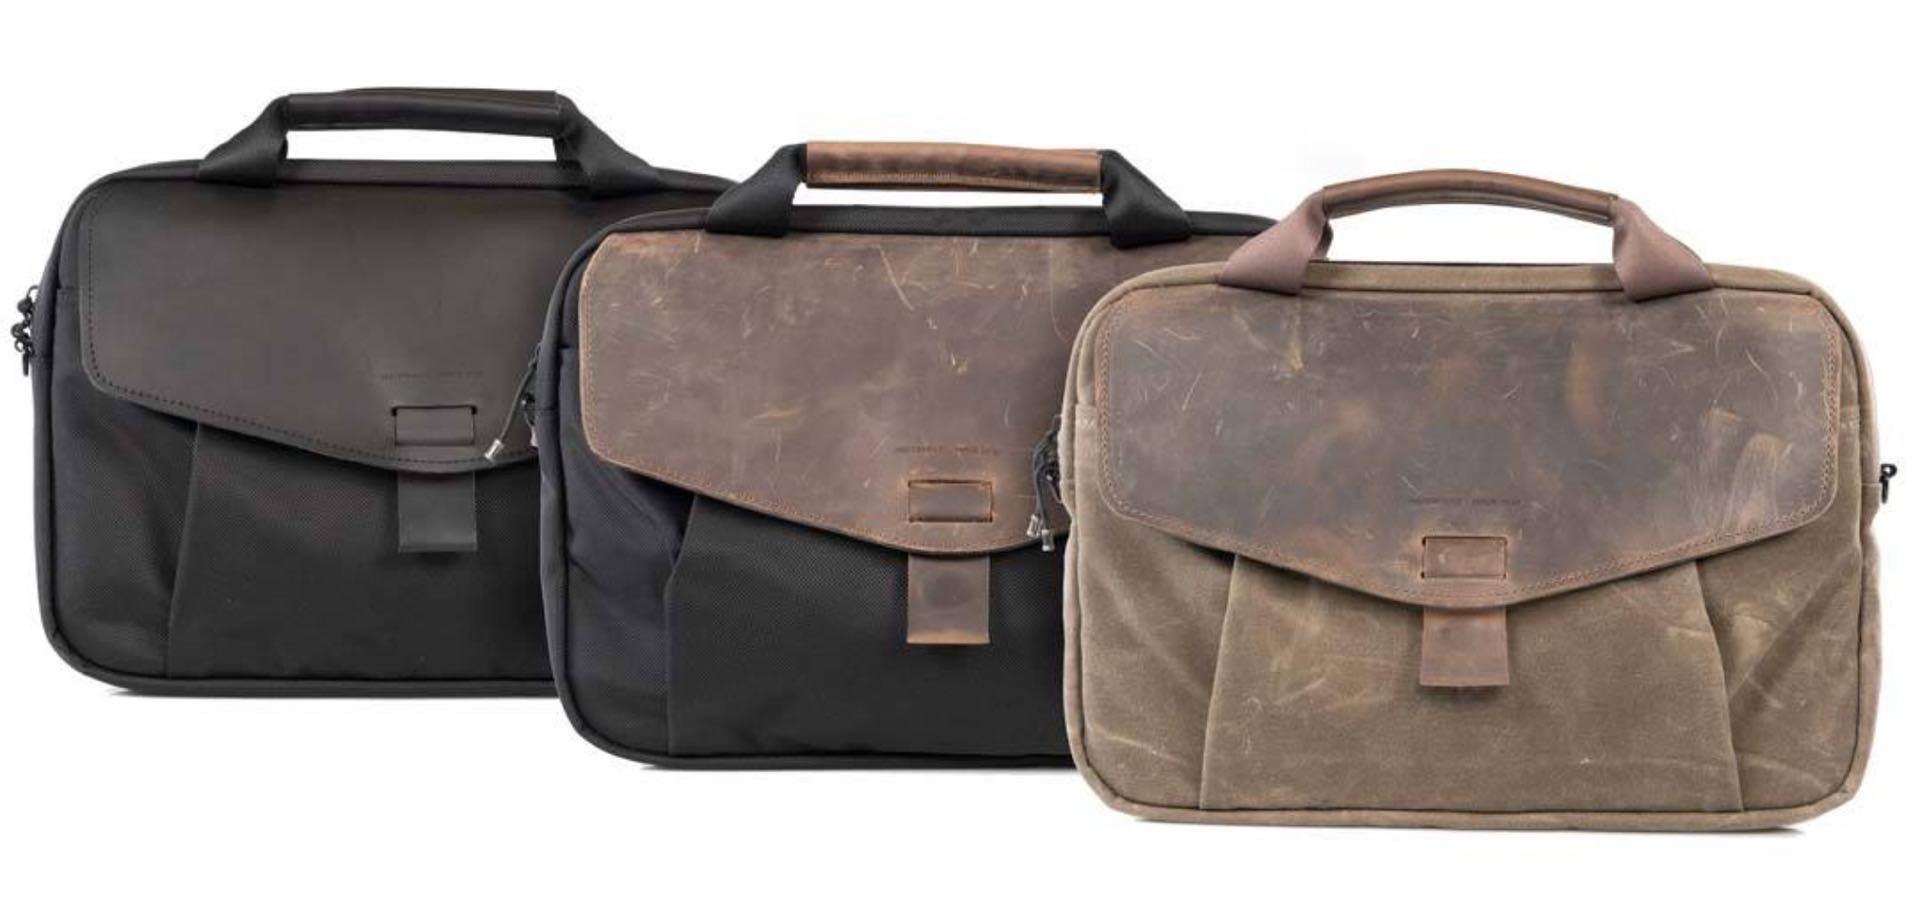 waterfield-designs-outback-duo-laptop-brief-colorways